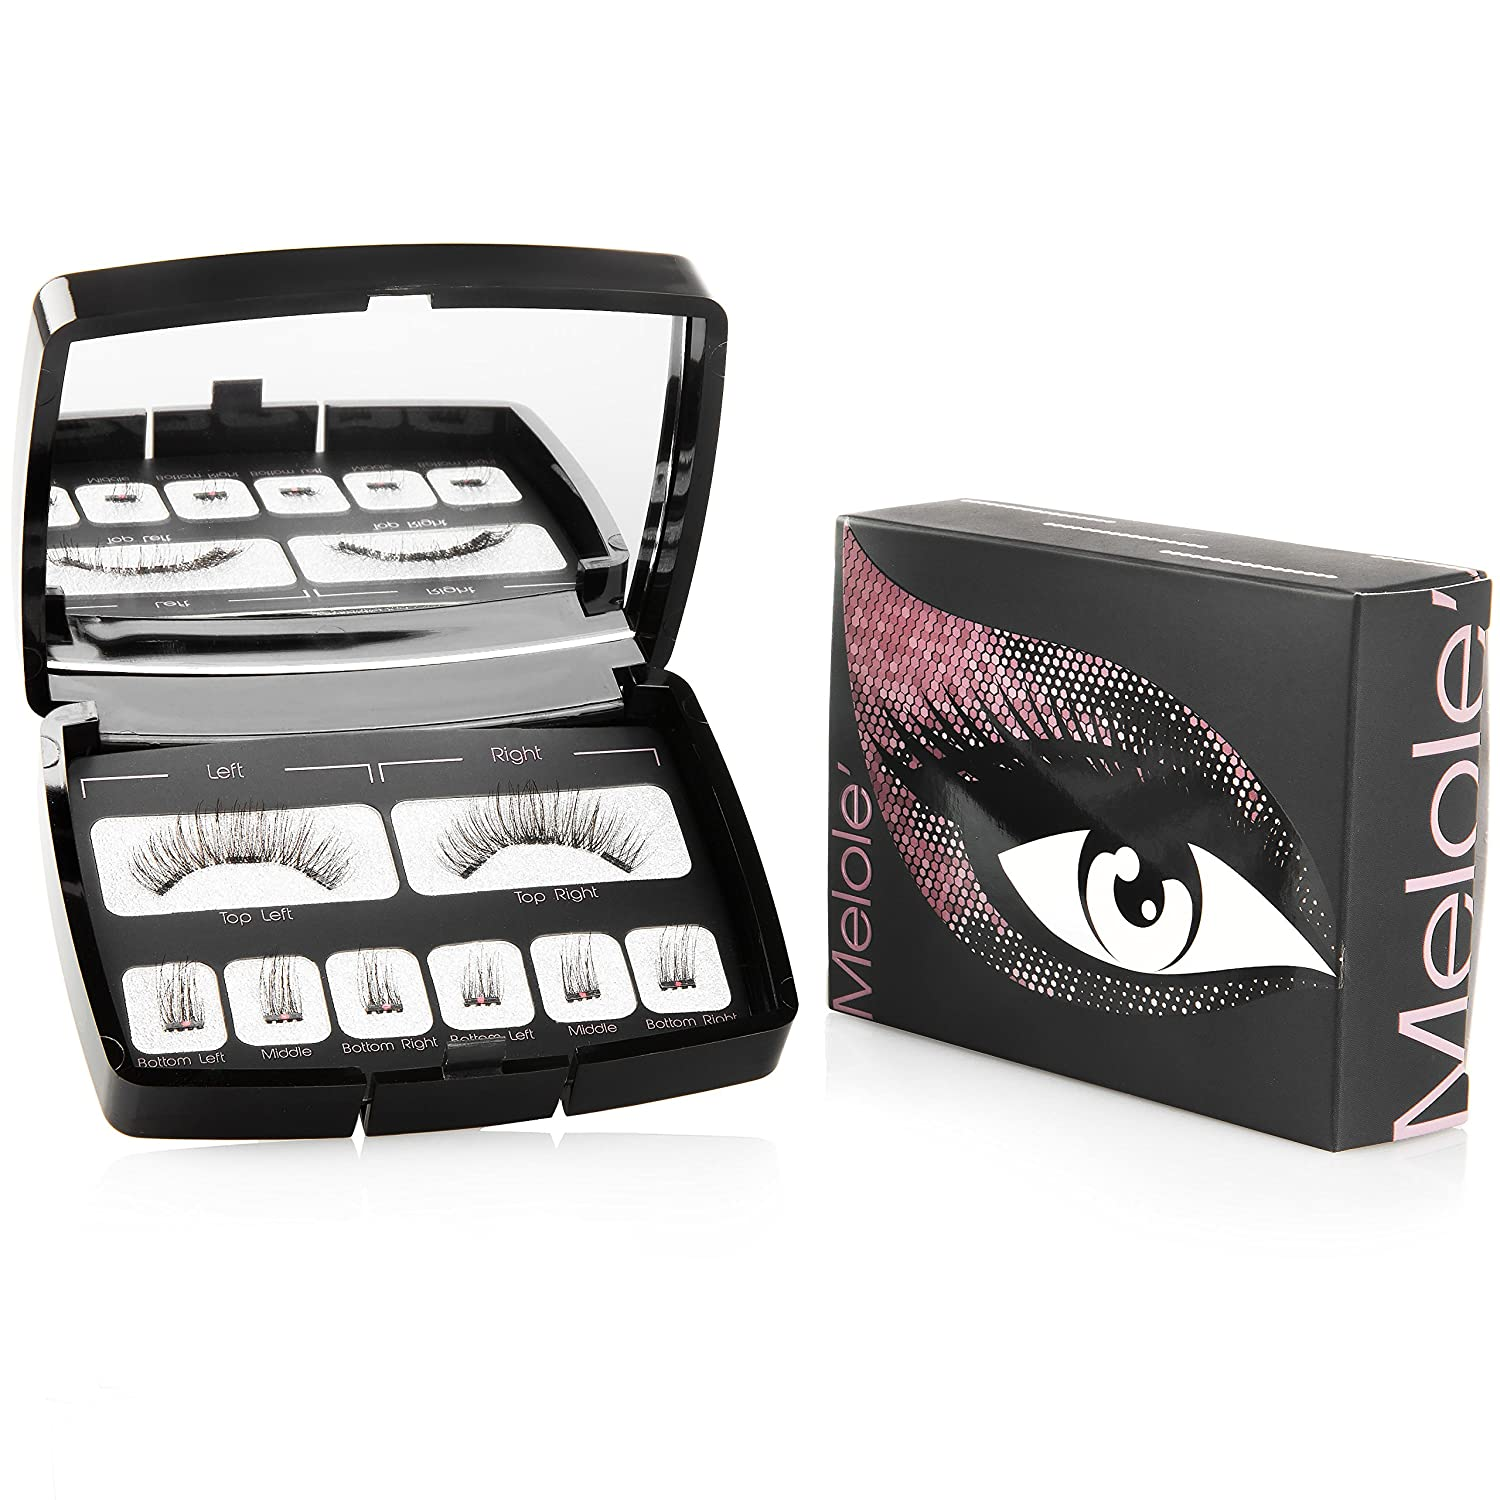 55b13869037 Amazon.com : Melole Full Eye Magnetic Eyelashes: No Glue Sophie Fake Eyelash  Extensions with 3 Magnets - Easy to Apply Reusable Magnetic Lashes with ...